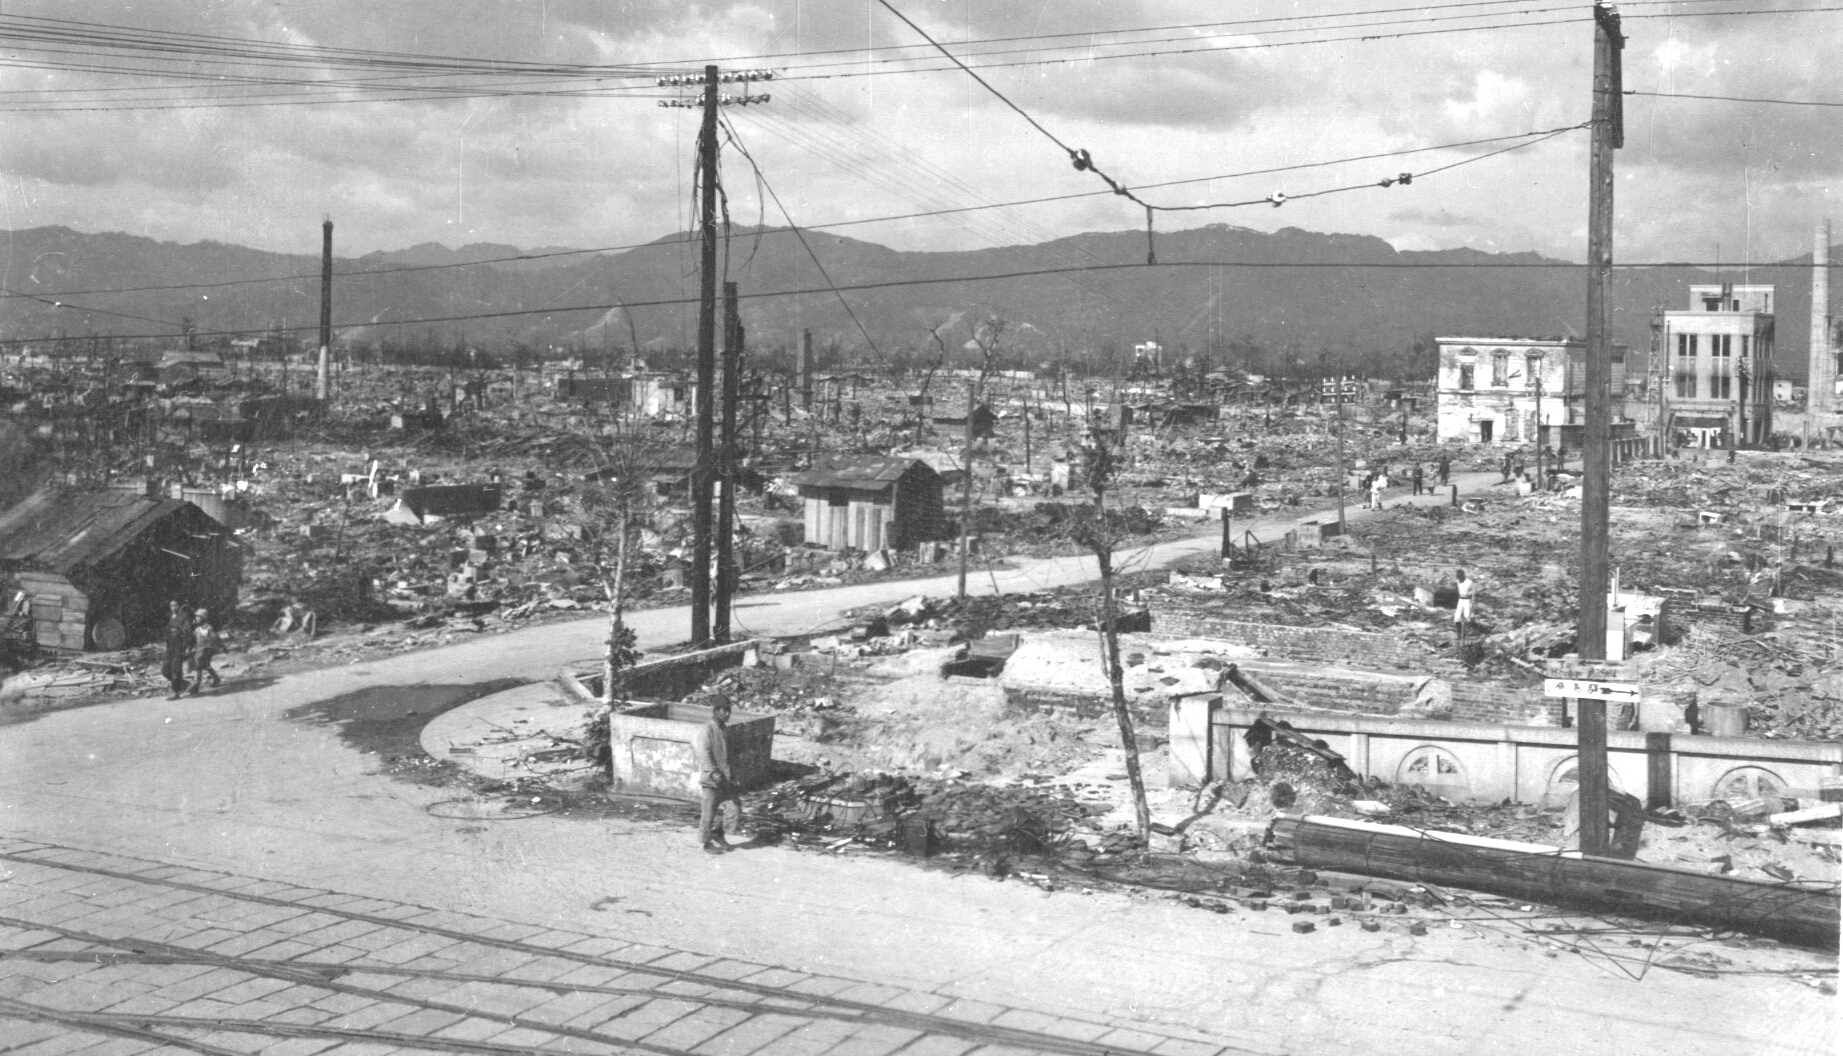 Photograph of Hiroshima after atomic bomb. A road is in teh foreground. Two people are walking in the background. Most of the scene is rubble with a few buildings standing in the background.